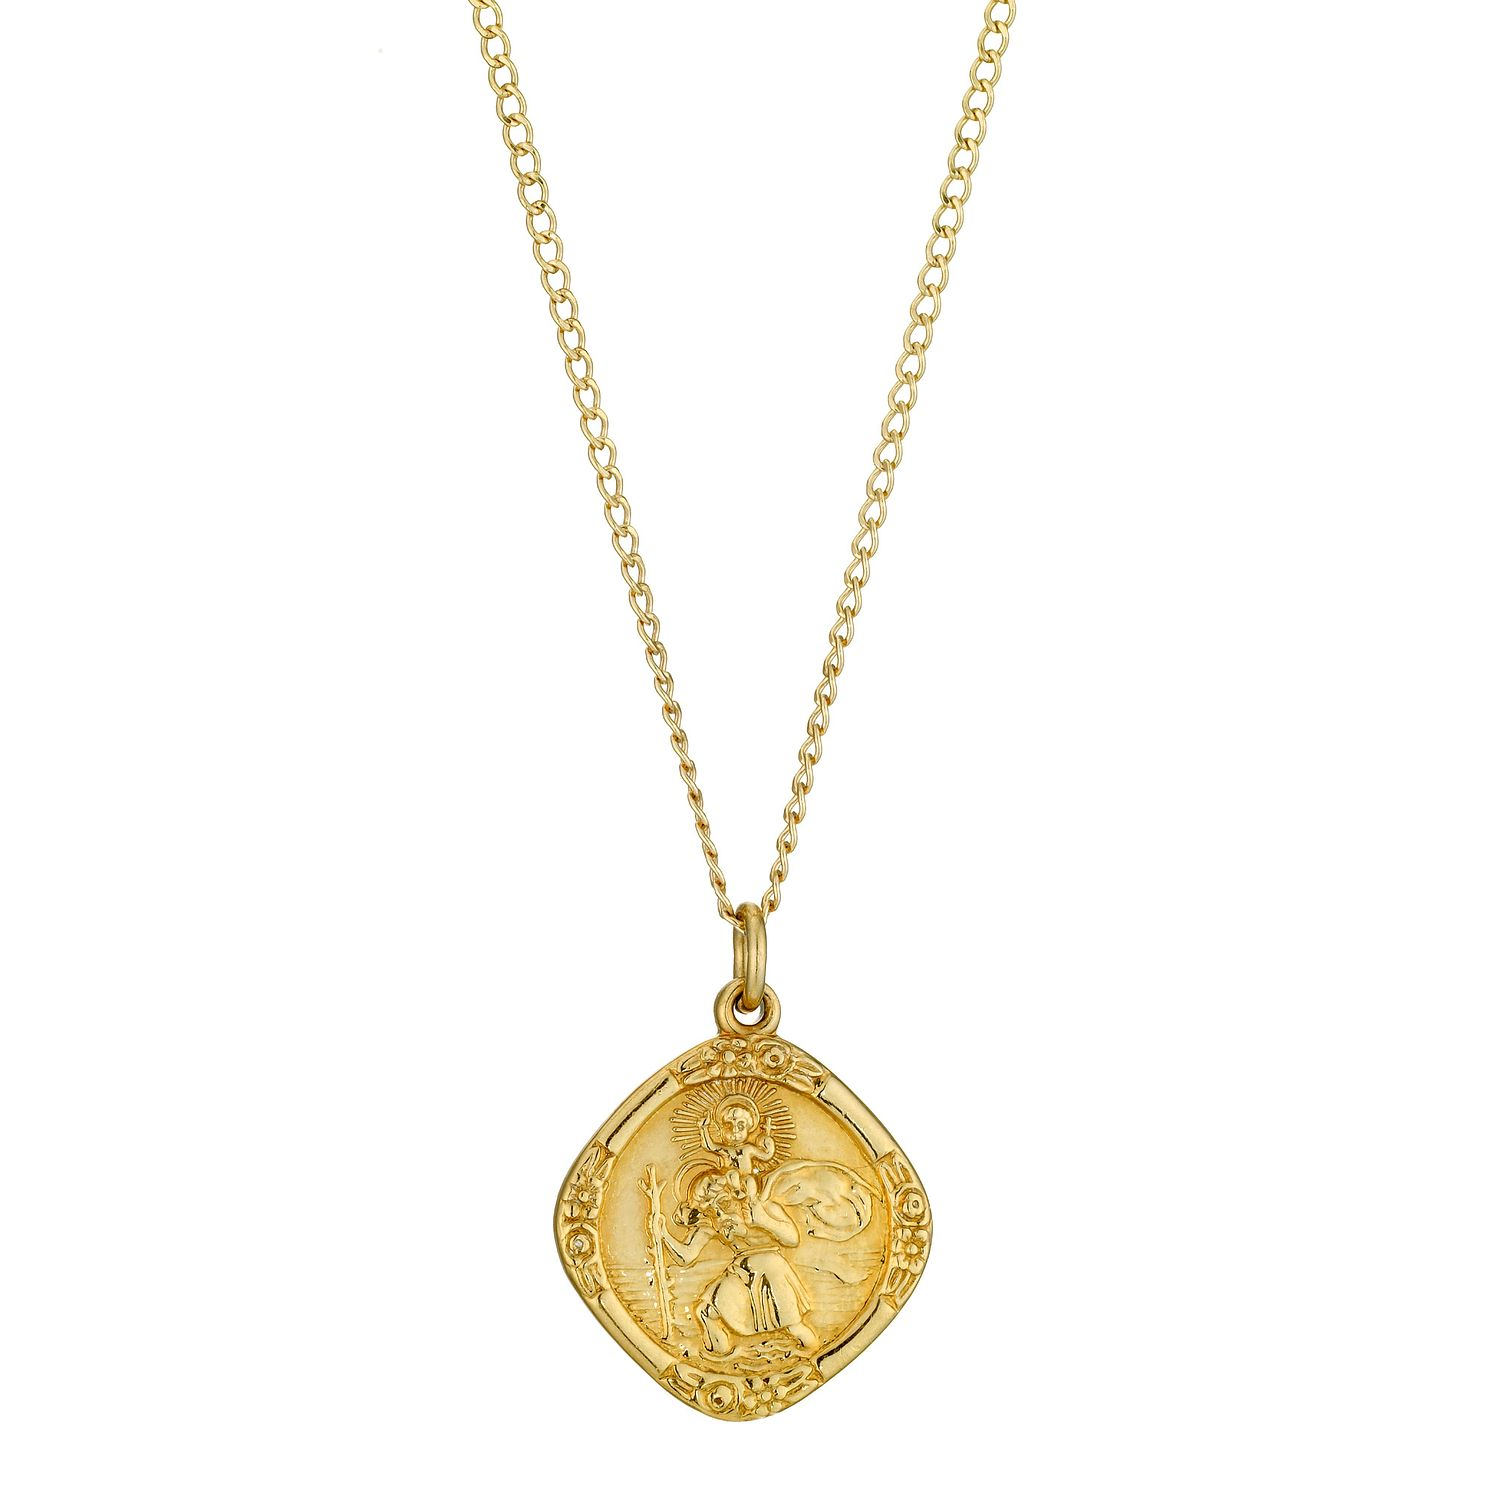 Rolled gold diamond shaped st christopher pendant hmuel rolled gold diamond shaped st christopher pendant product number 8974667 aloadofball Image collections